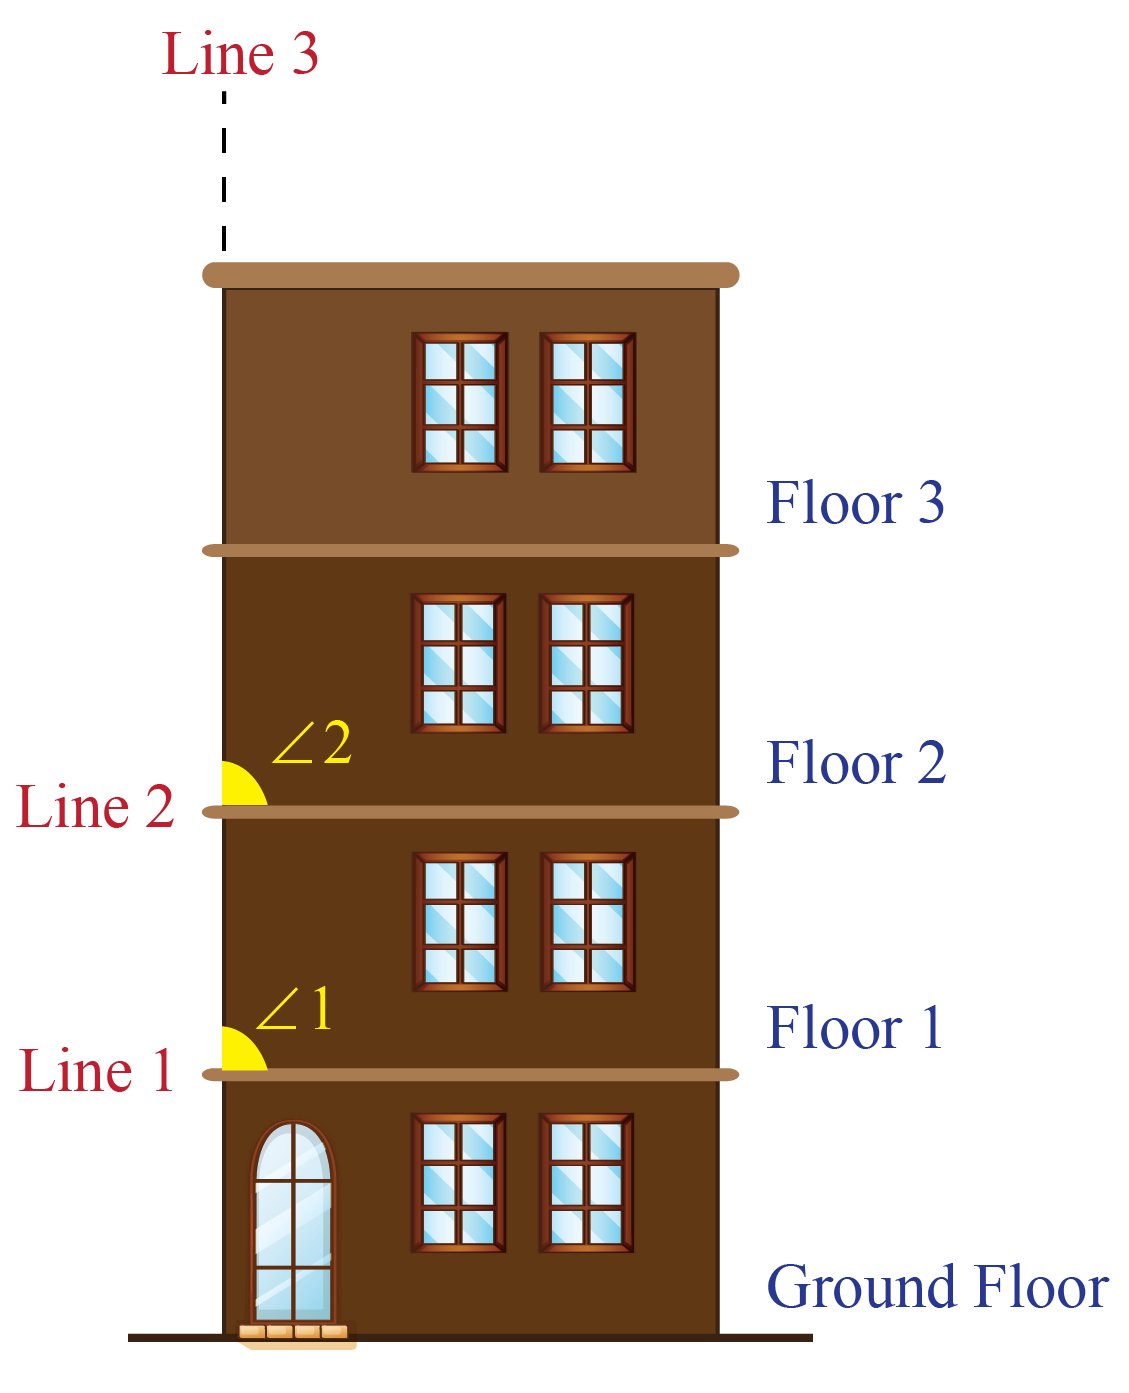 A building with three floors. Line 1 and 2 are parallel. Line 3 is an intersecting straight line.